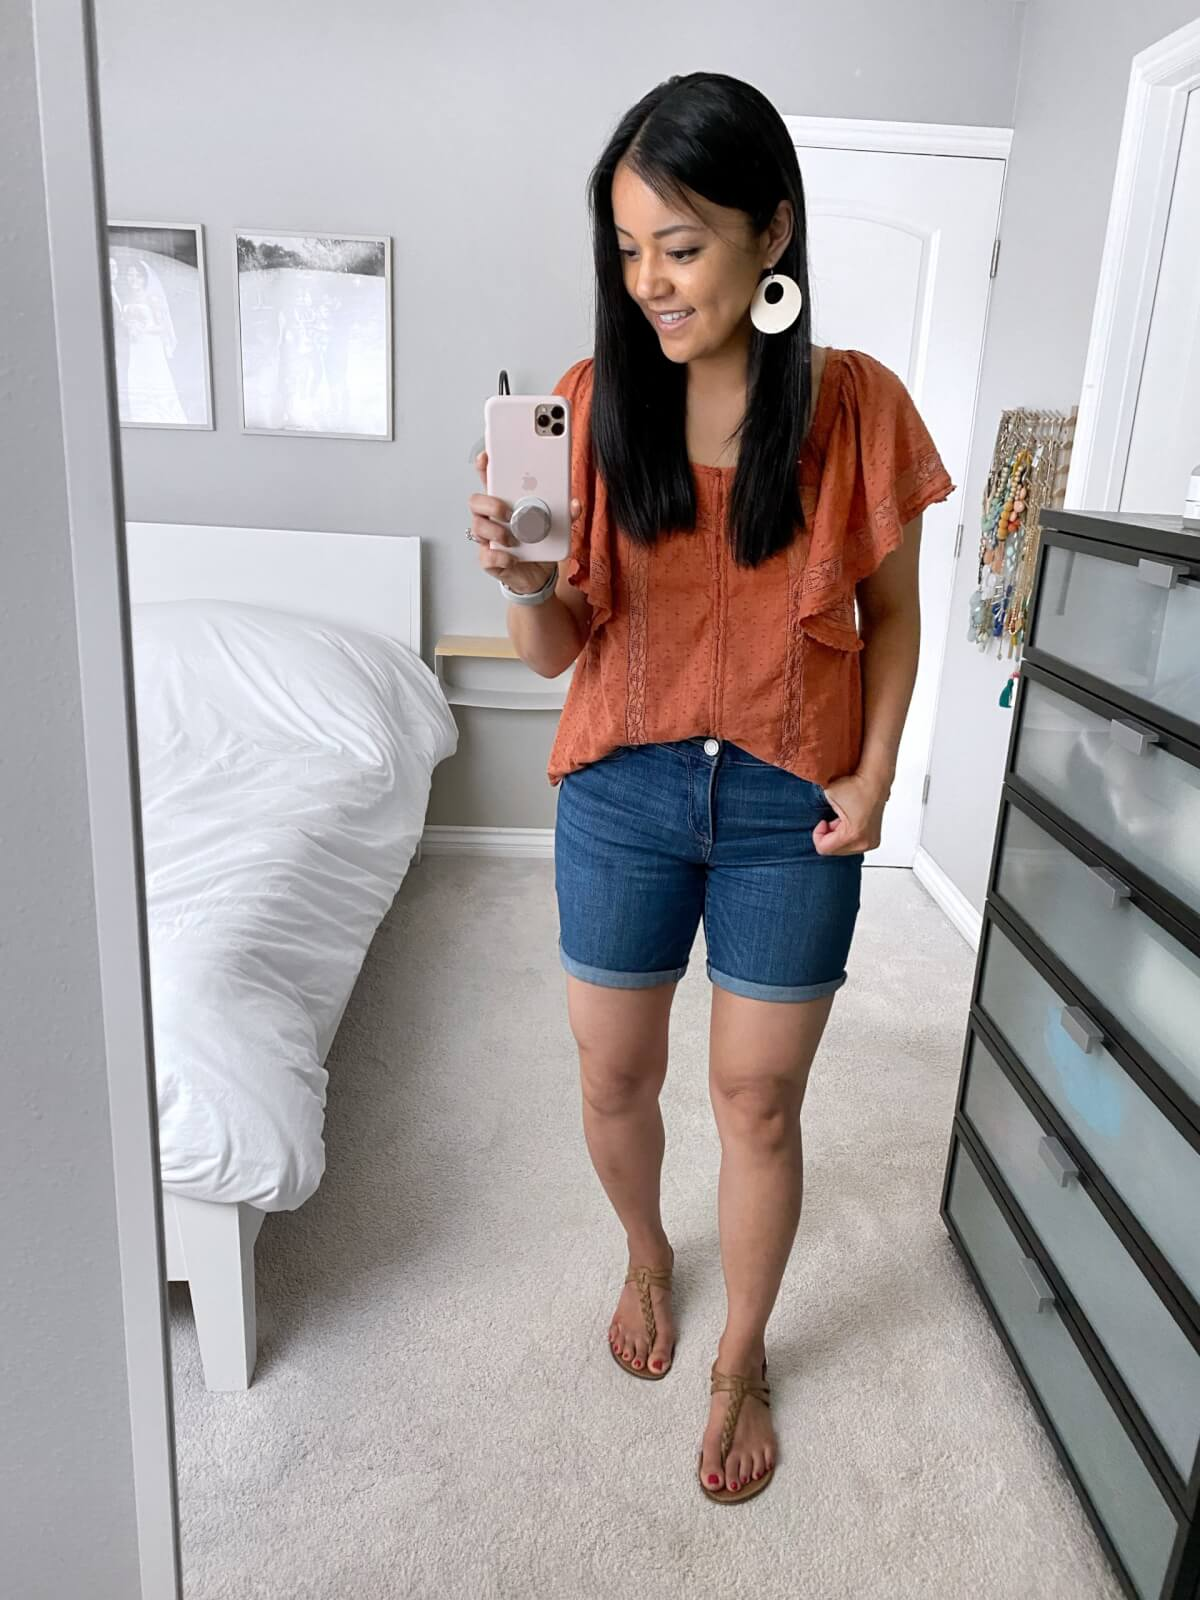 Elevated Casual Outfit: Old Navy crochet top + denim shorts + white earrings + leather t-strap sandals